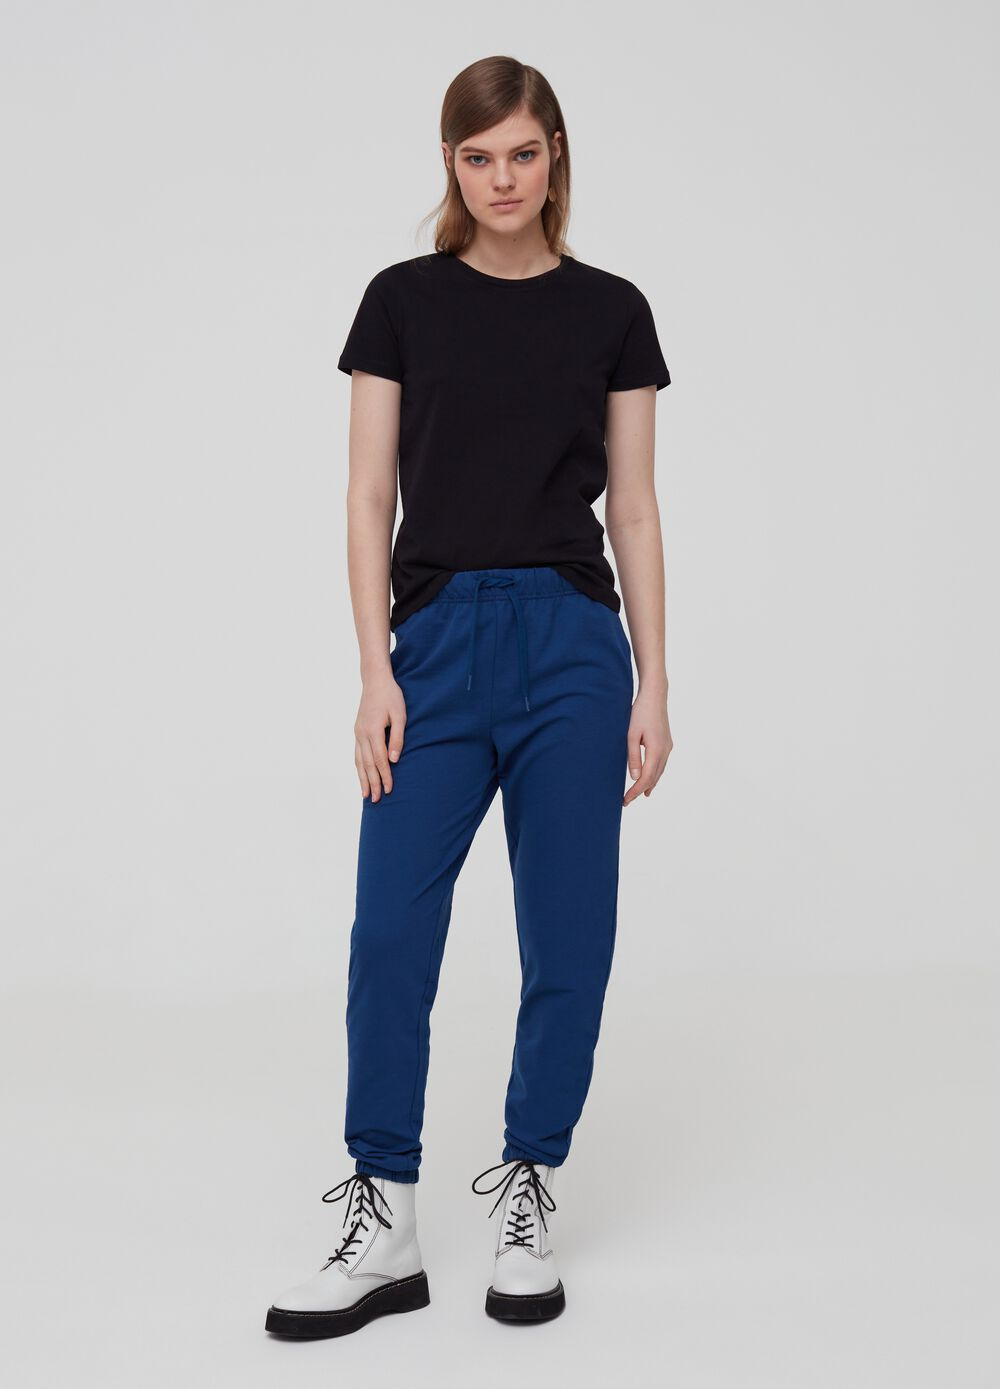 Trousers with drawstring and pockets